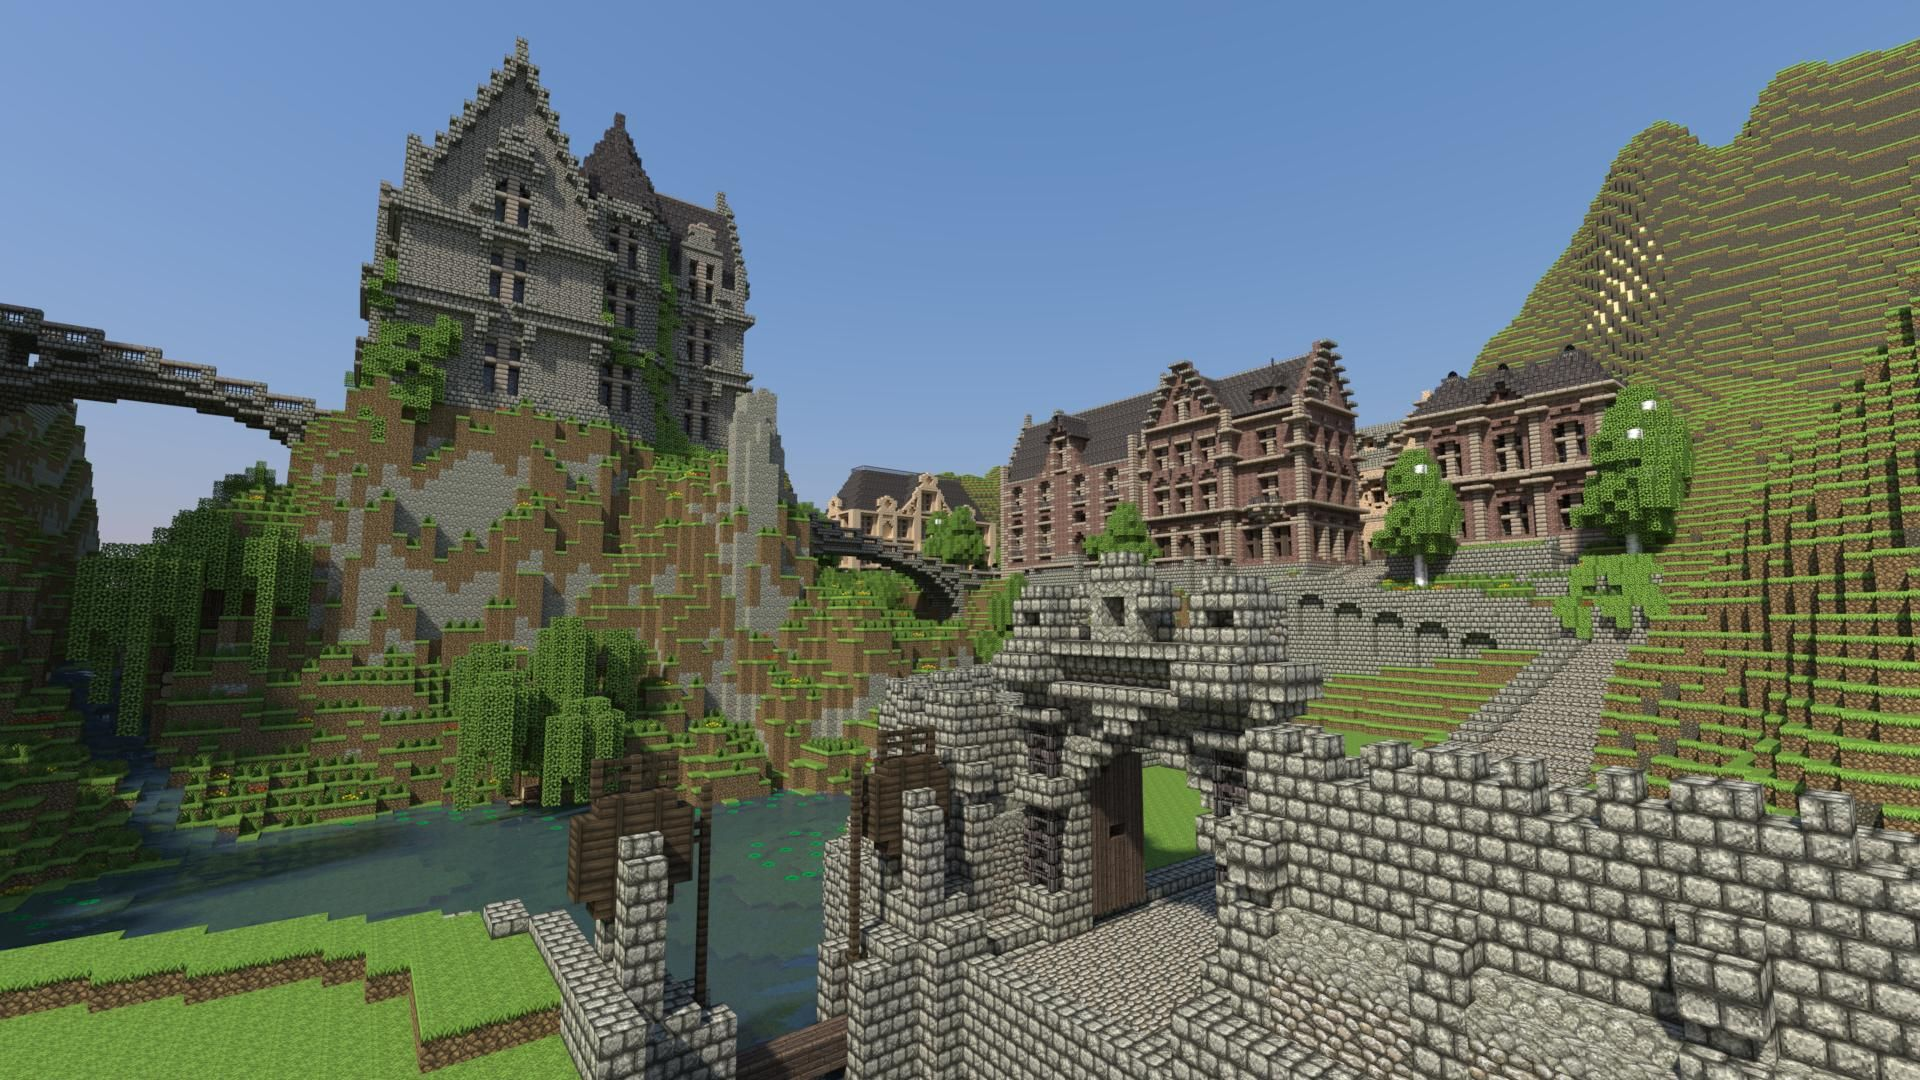 Minecraft Wallpaper for PC Full HD Pictures